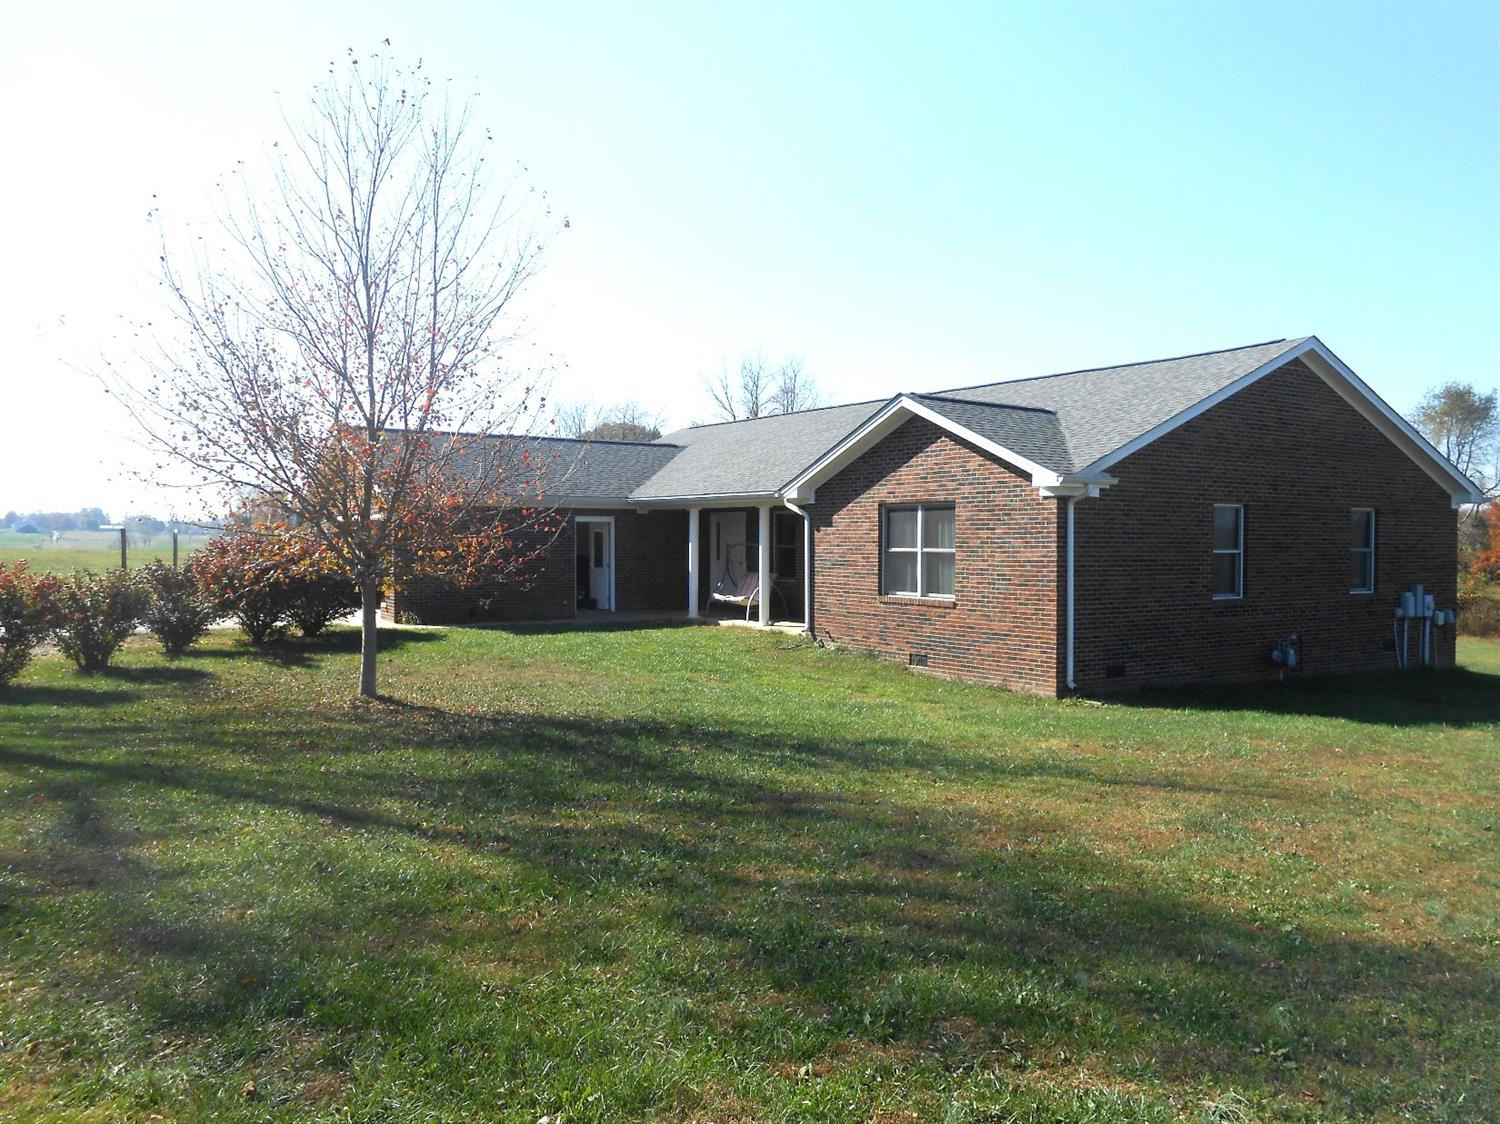 Home For Sale at 2148-Tct 4 Leestown Rd, Frankfort, KY 40601